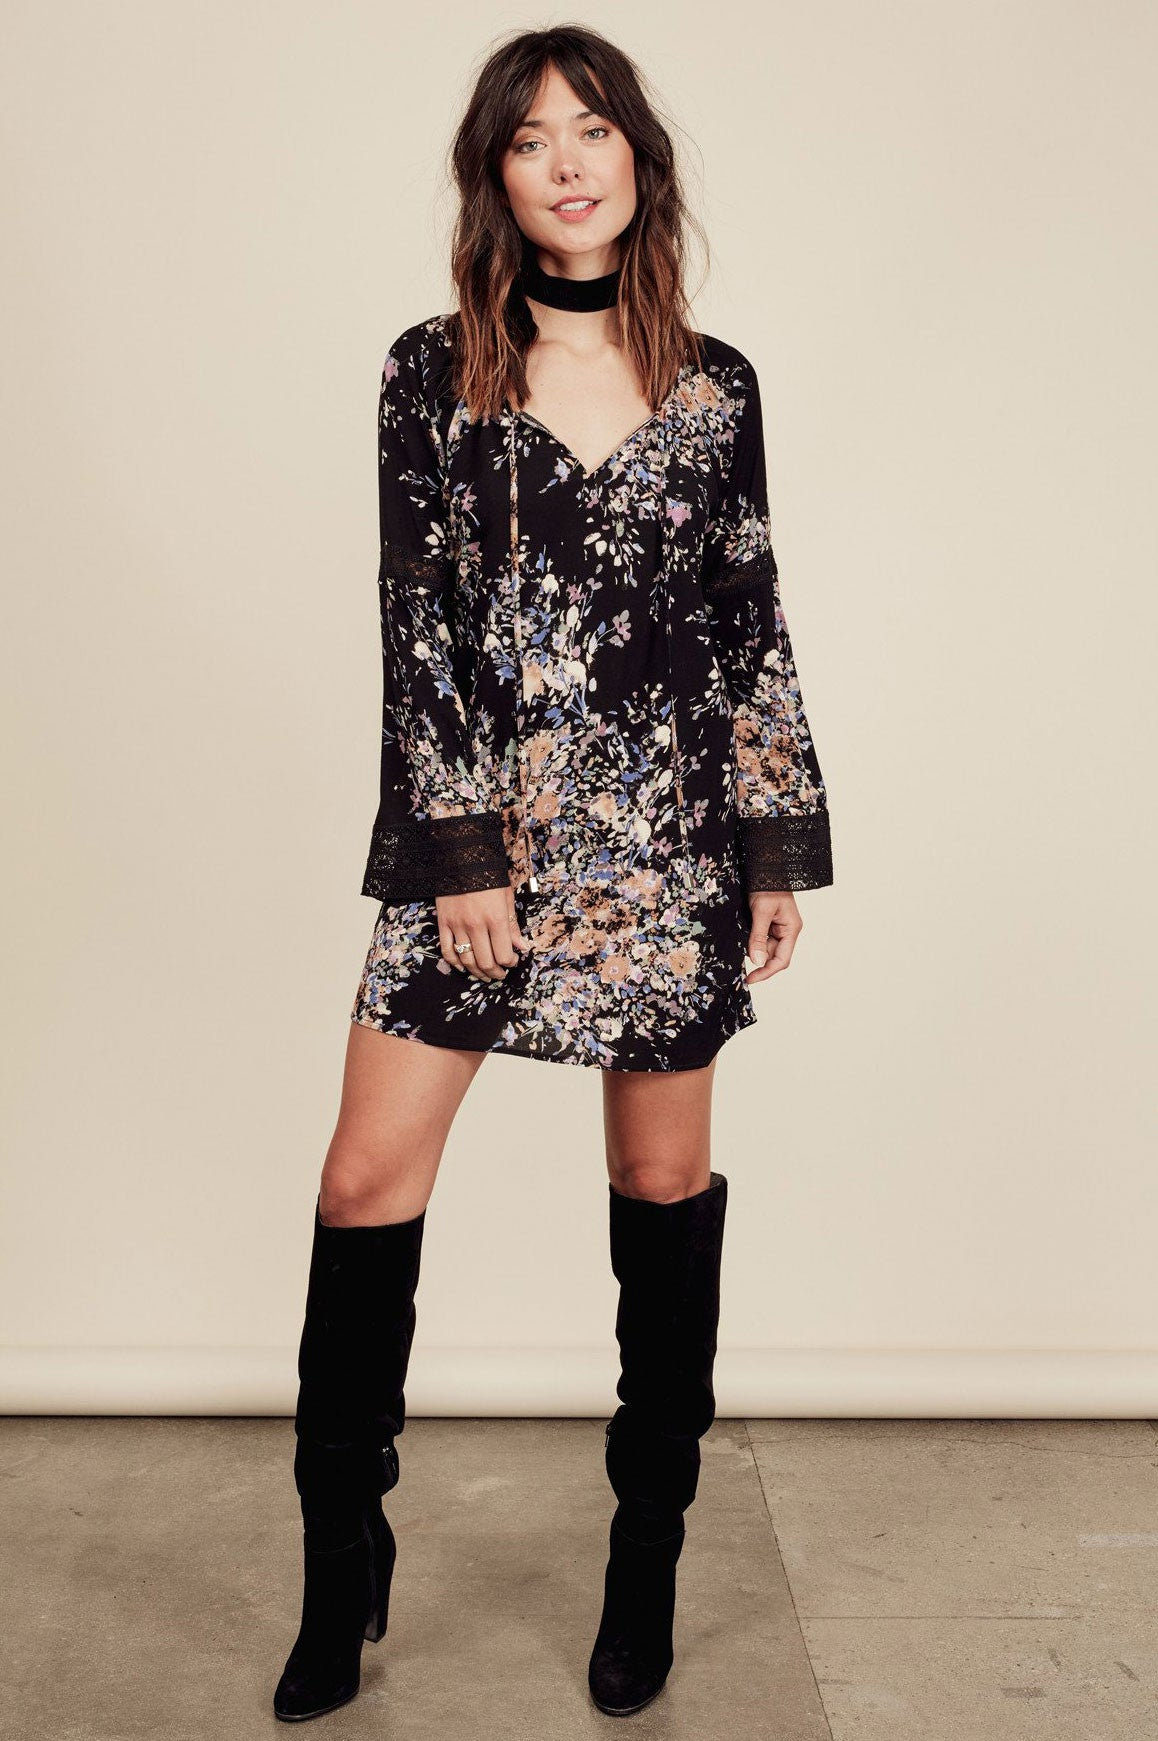 Lace black short dress with long sleeves